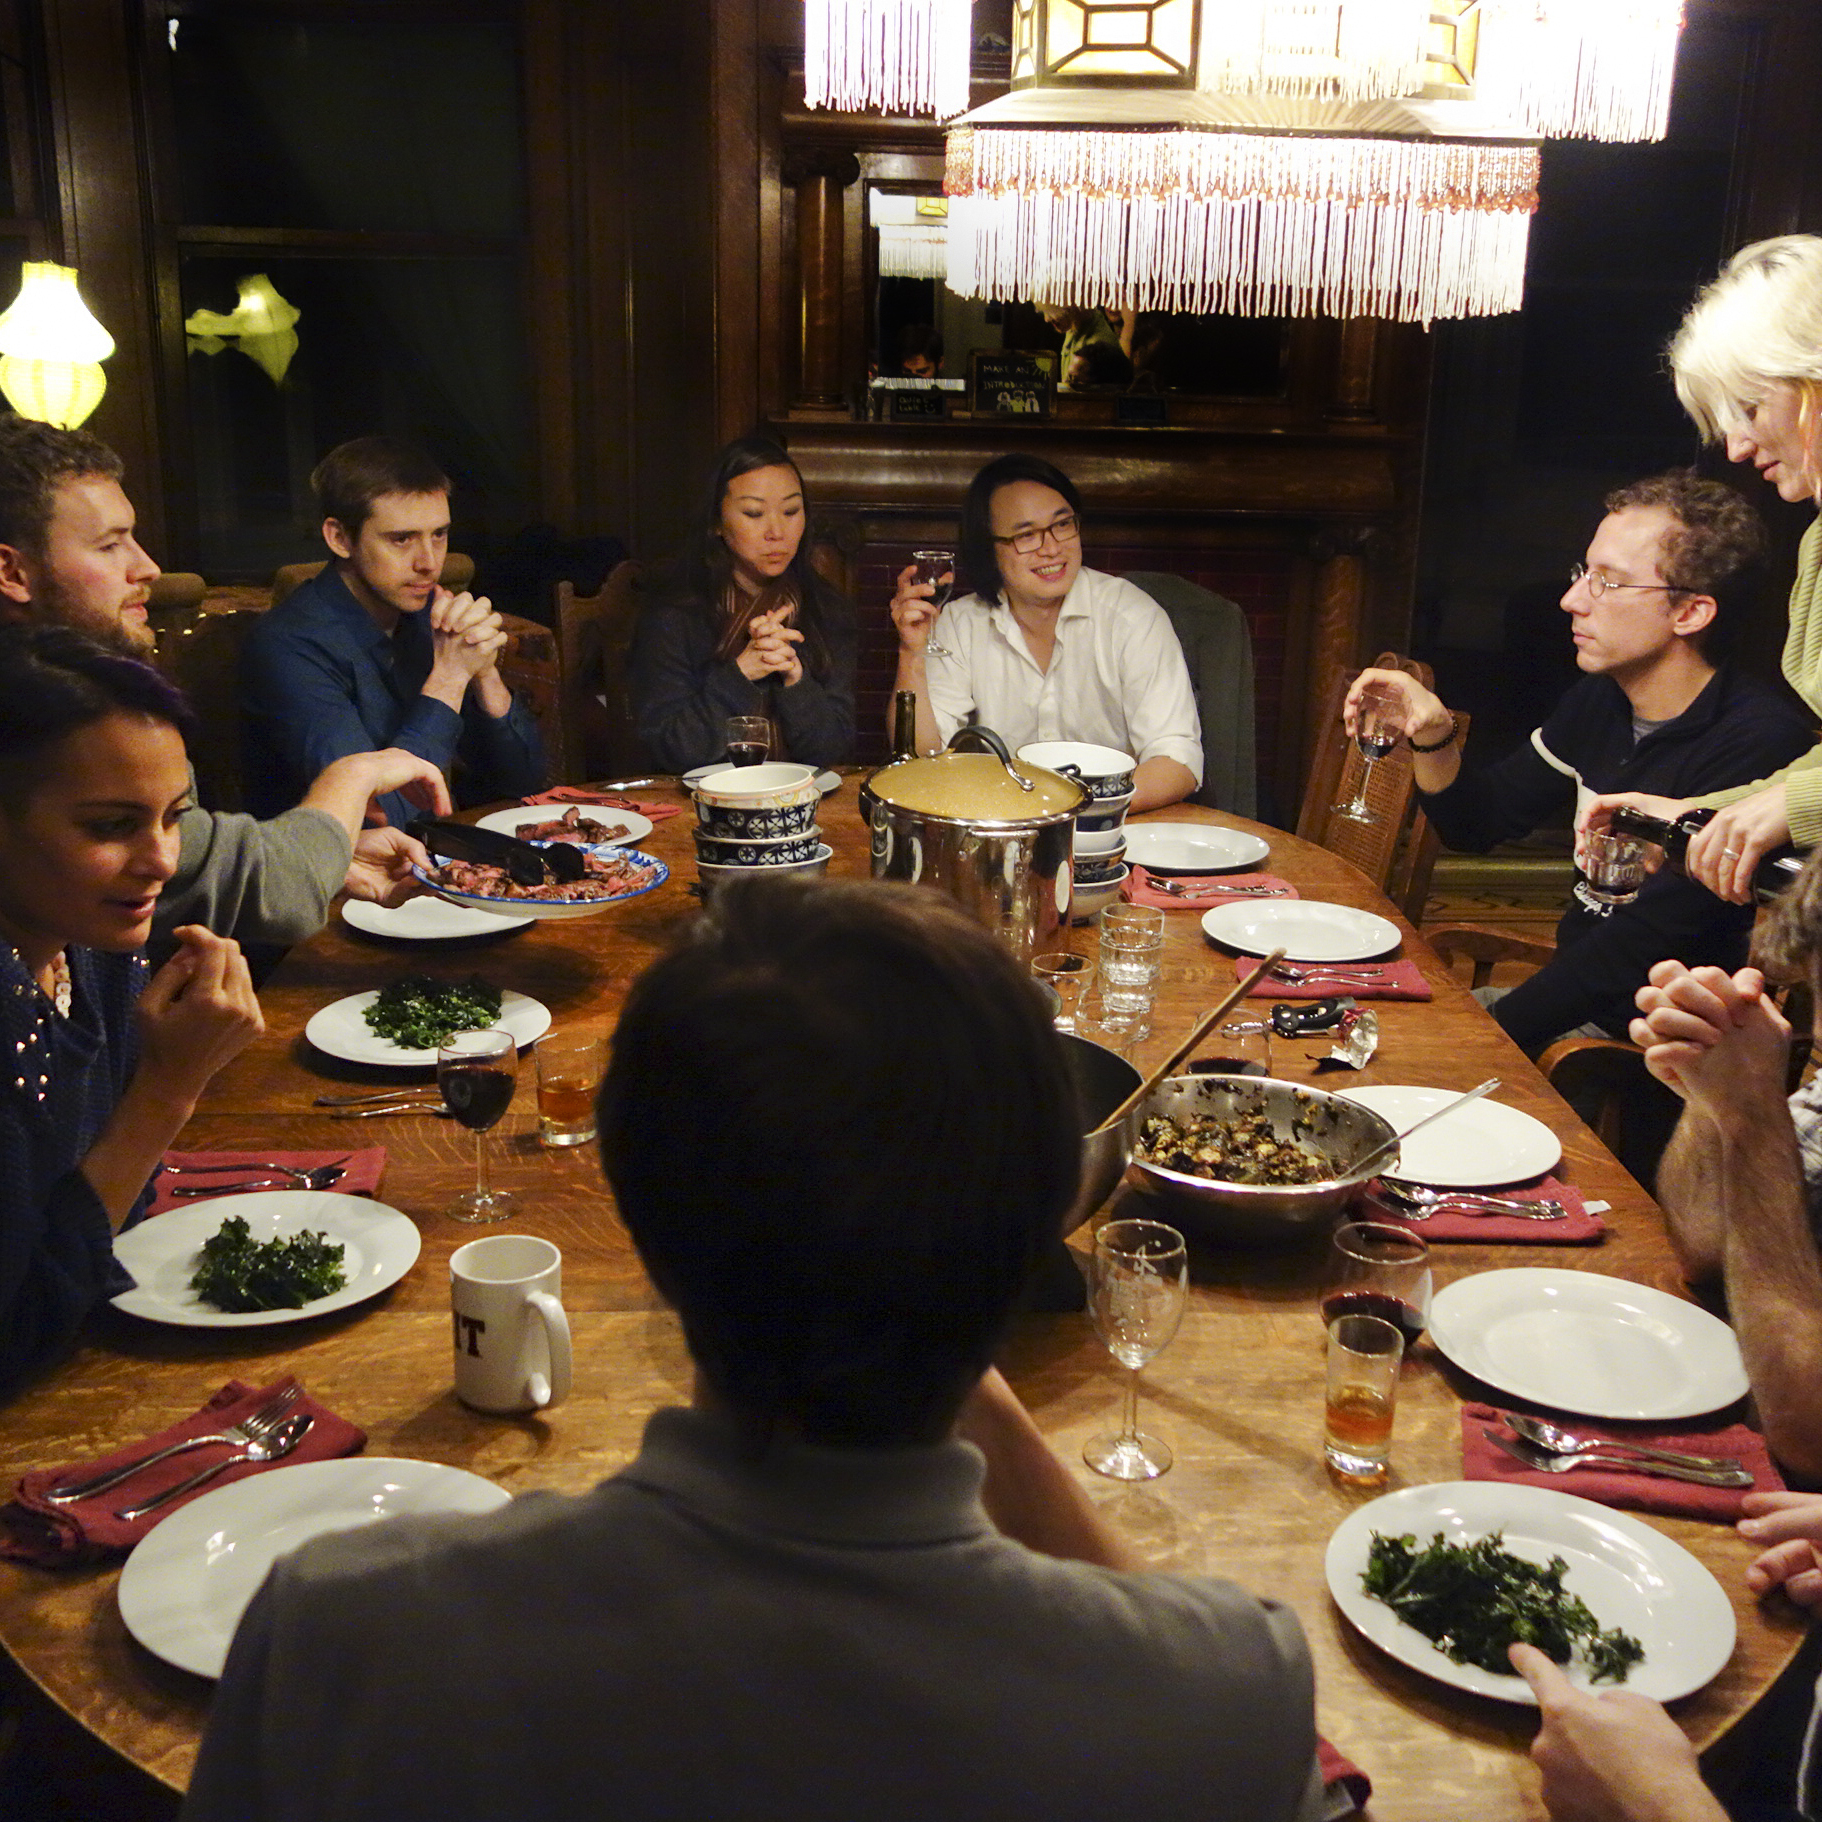 Residents of the Embassy House, a communal home near San Francisco's Haight-Ashbury district, eat dinner together every Sunday.